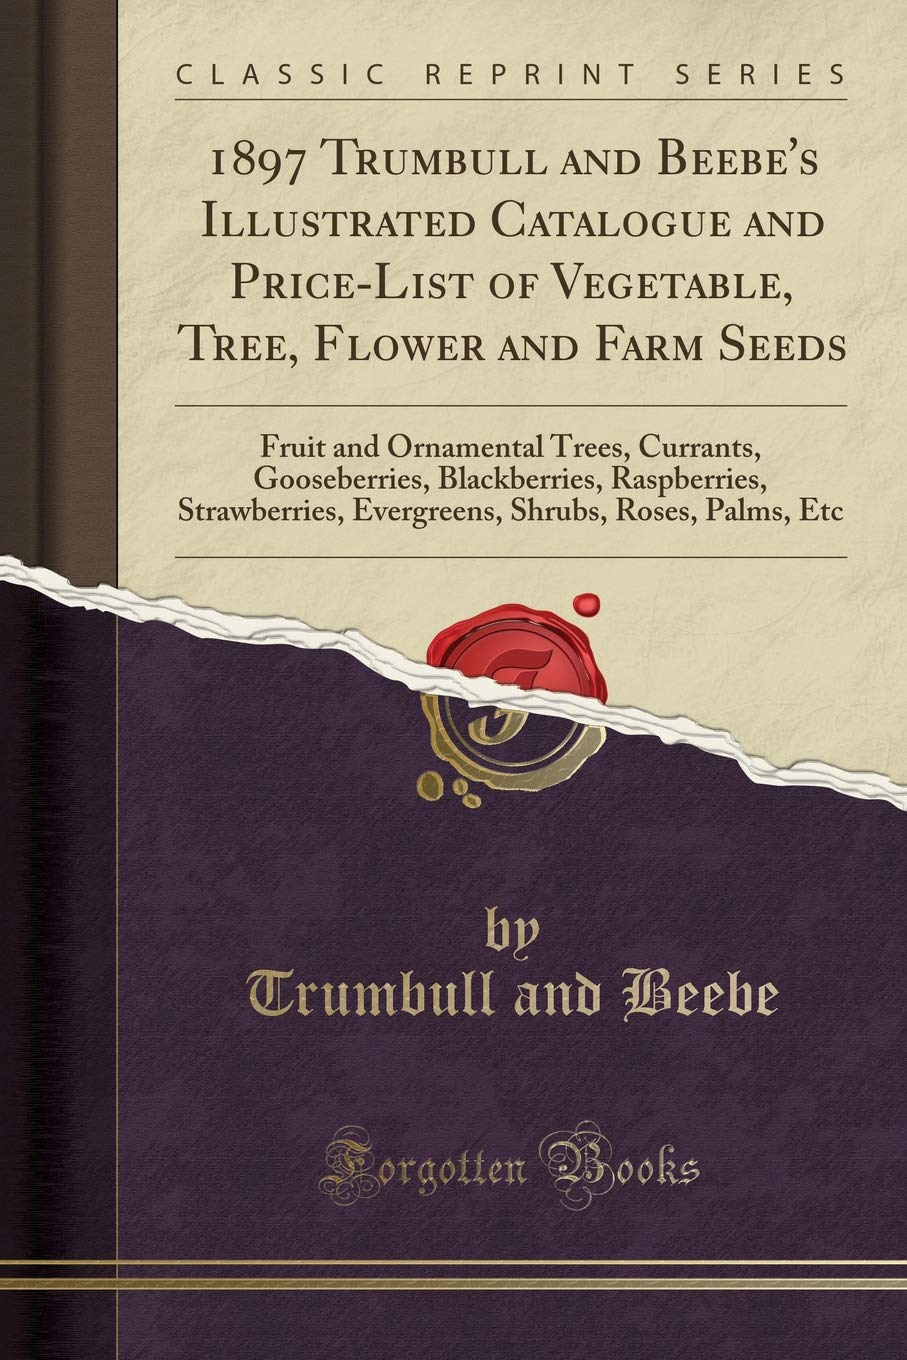 Download 1897 Trumbull and Beebe's Illustrated Catalogue and Price-List of Vegetable, Tree, Flower and Farm Seeds: Fruit and Ornamental Trees, Currants, ... Shrubs, Roses, Palms, Etc (Classic Reprint) pdf